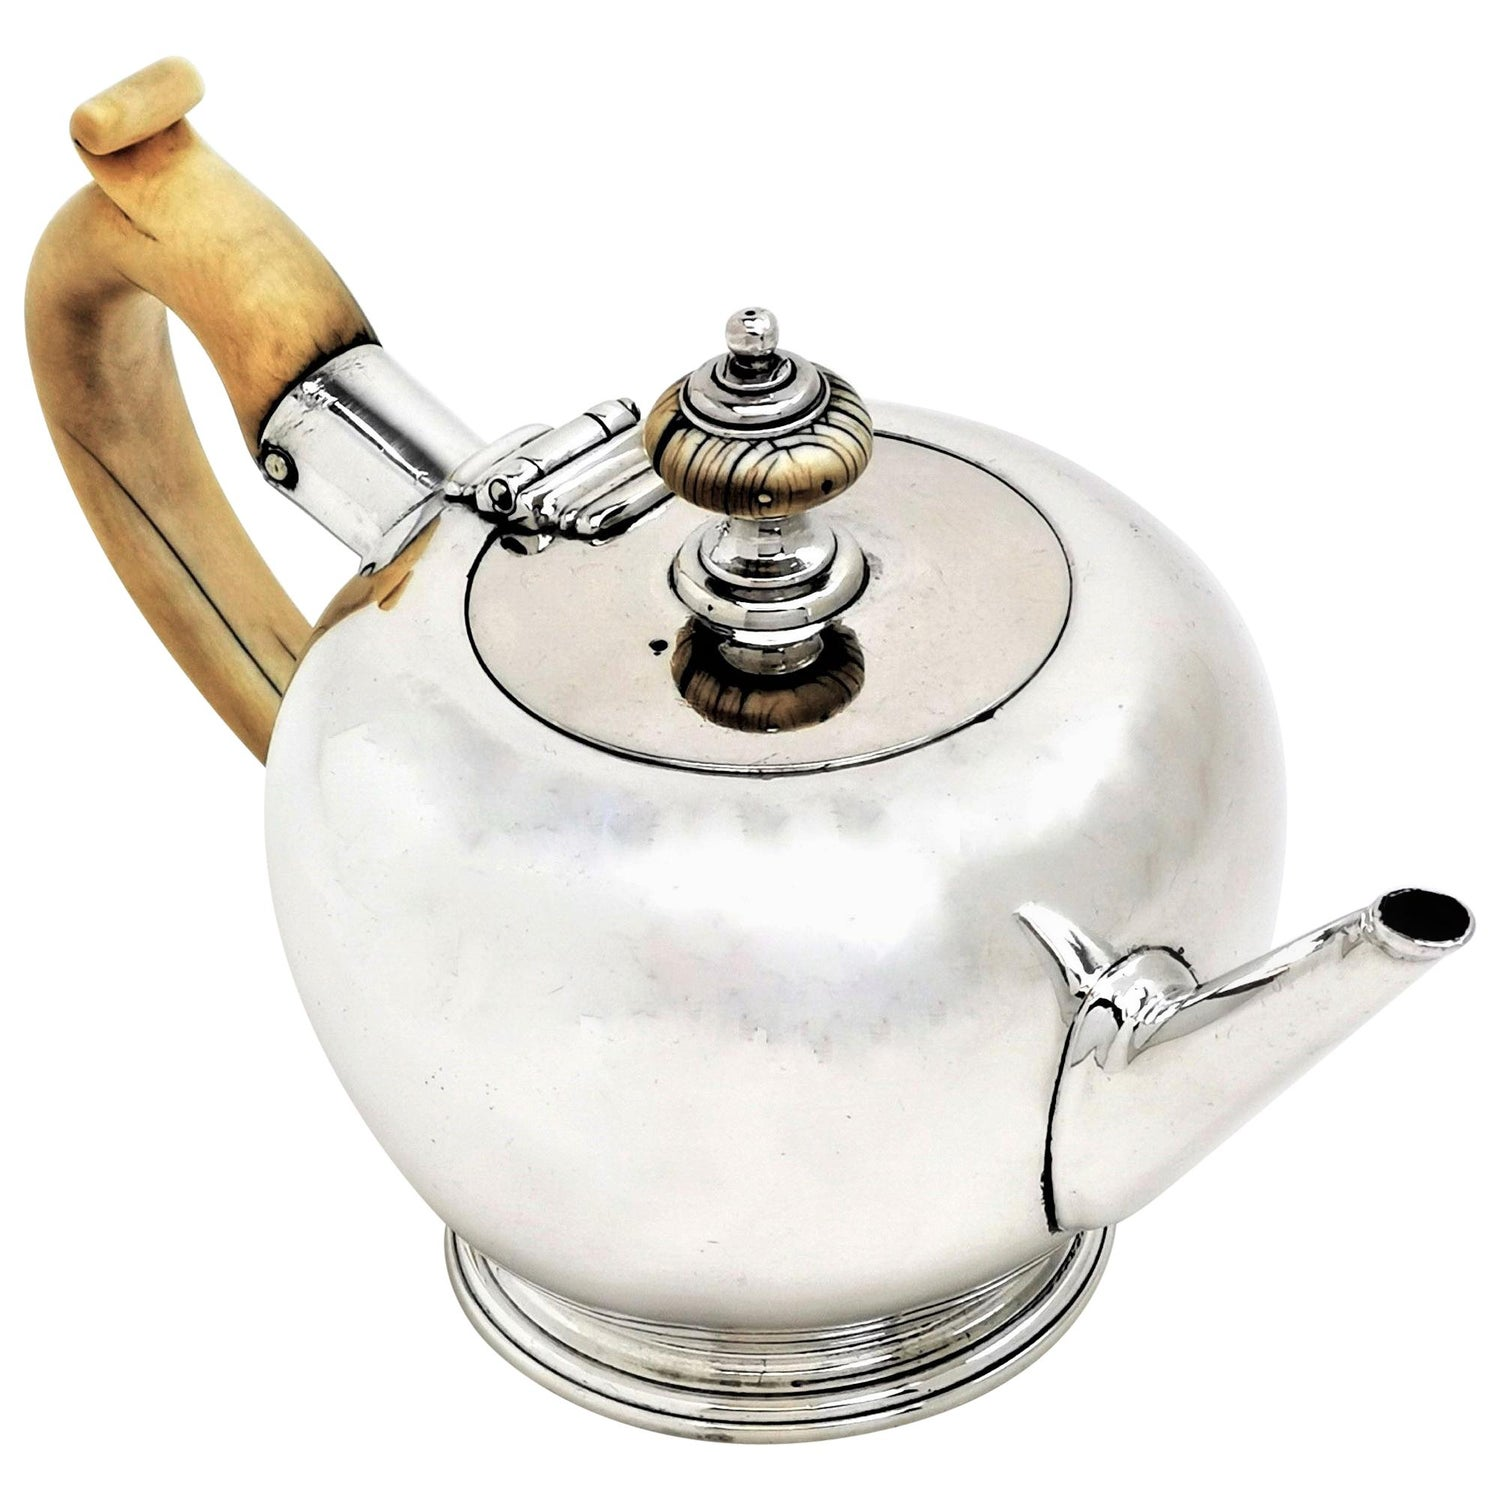 Antique George I Sterling Silver Bachelor Teapot, Early Georgian 18th Century